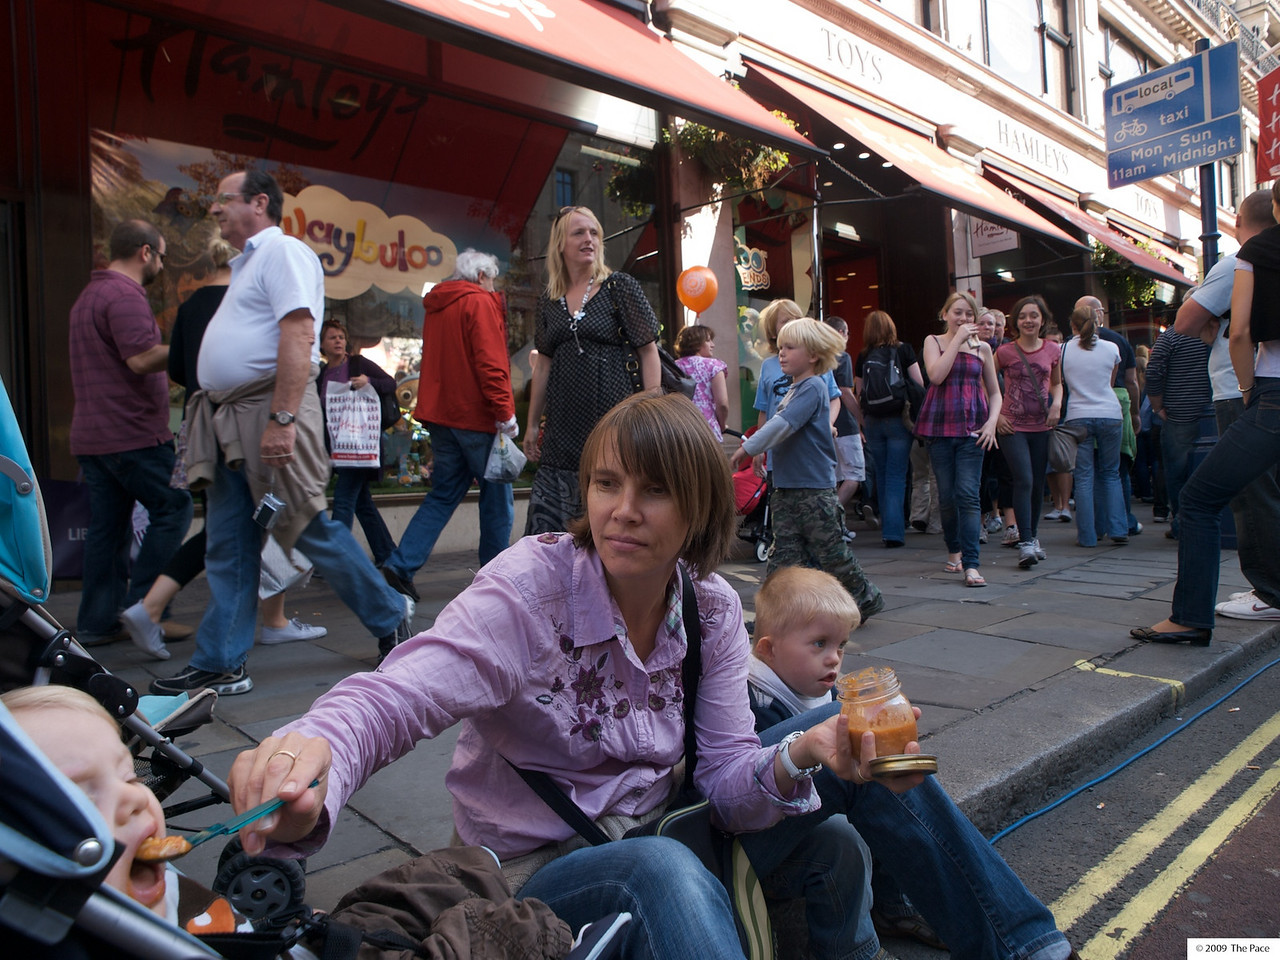 Sunday 11th Oct 2009 - Even Luc must have a break from shopping  at hamleys to eat